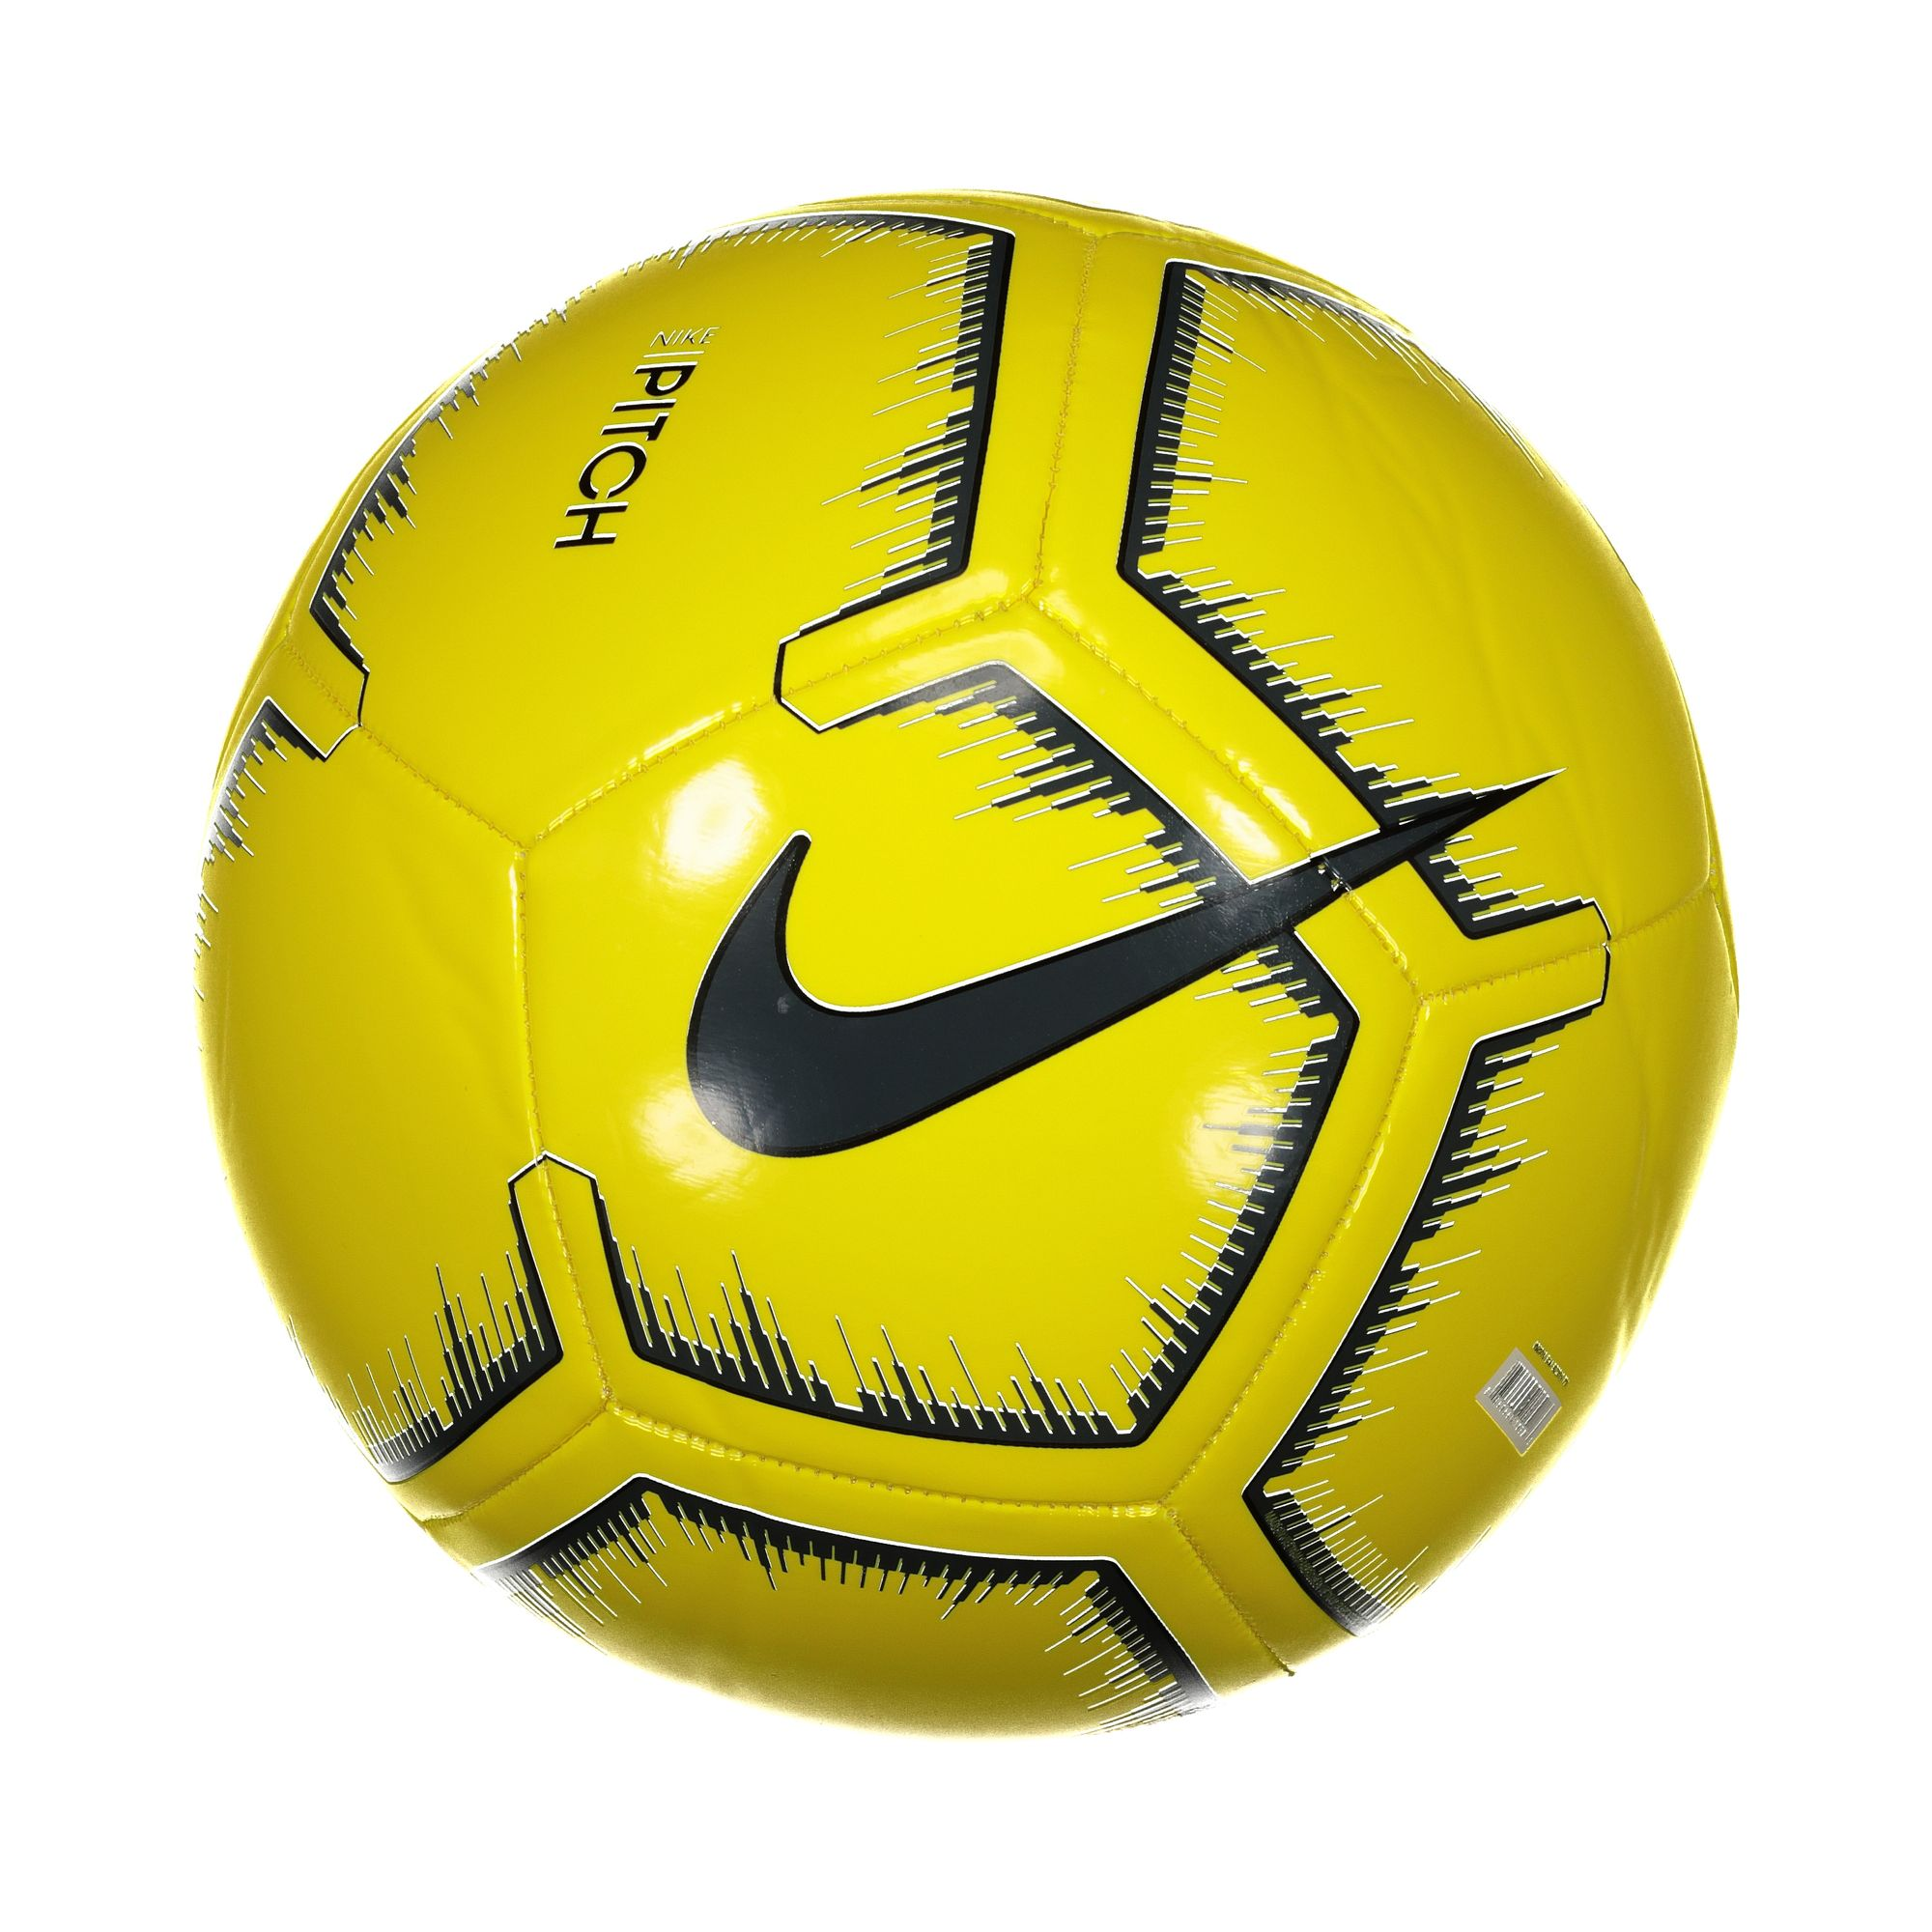 Nike Pitch Fa18 Fussball Opti Yellow Anthracite Ausrustung Fussball Fussballe